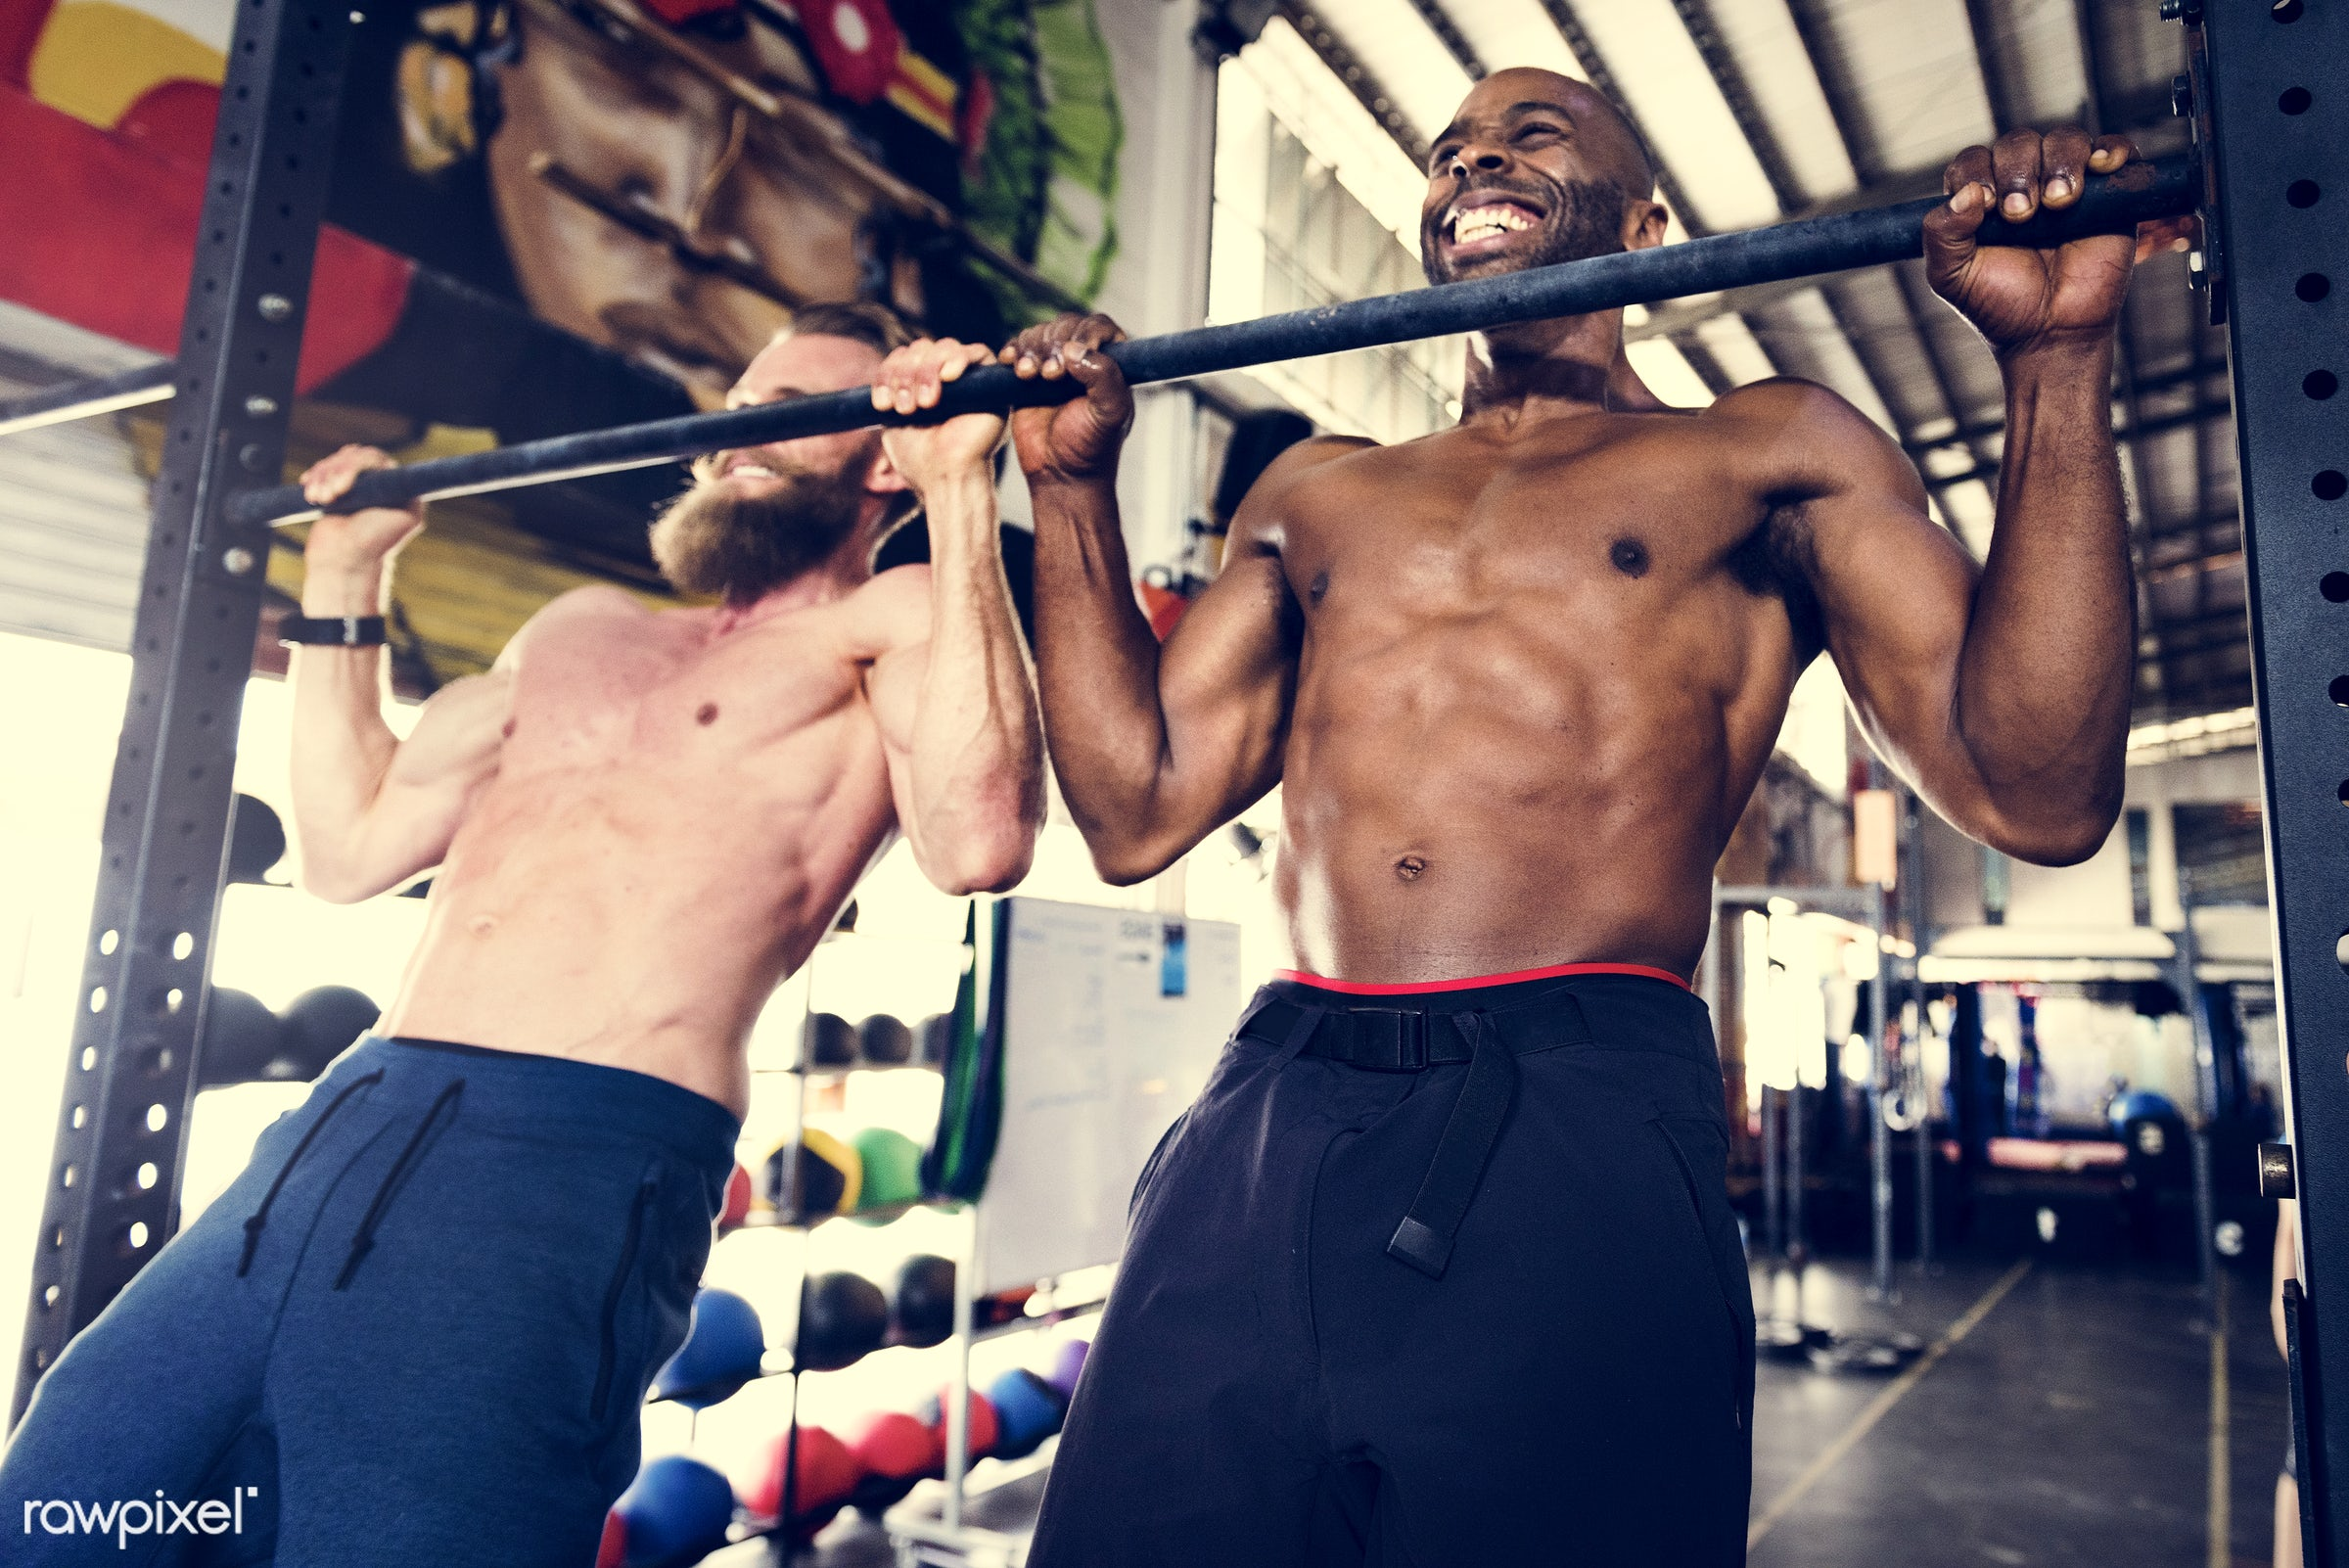 At the gym - active, activity, african descent, athlete, athletic, attractive, body, buff, caucasian, cheerful, diverse,...